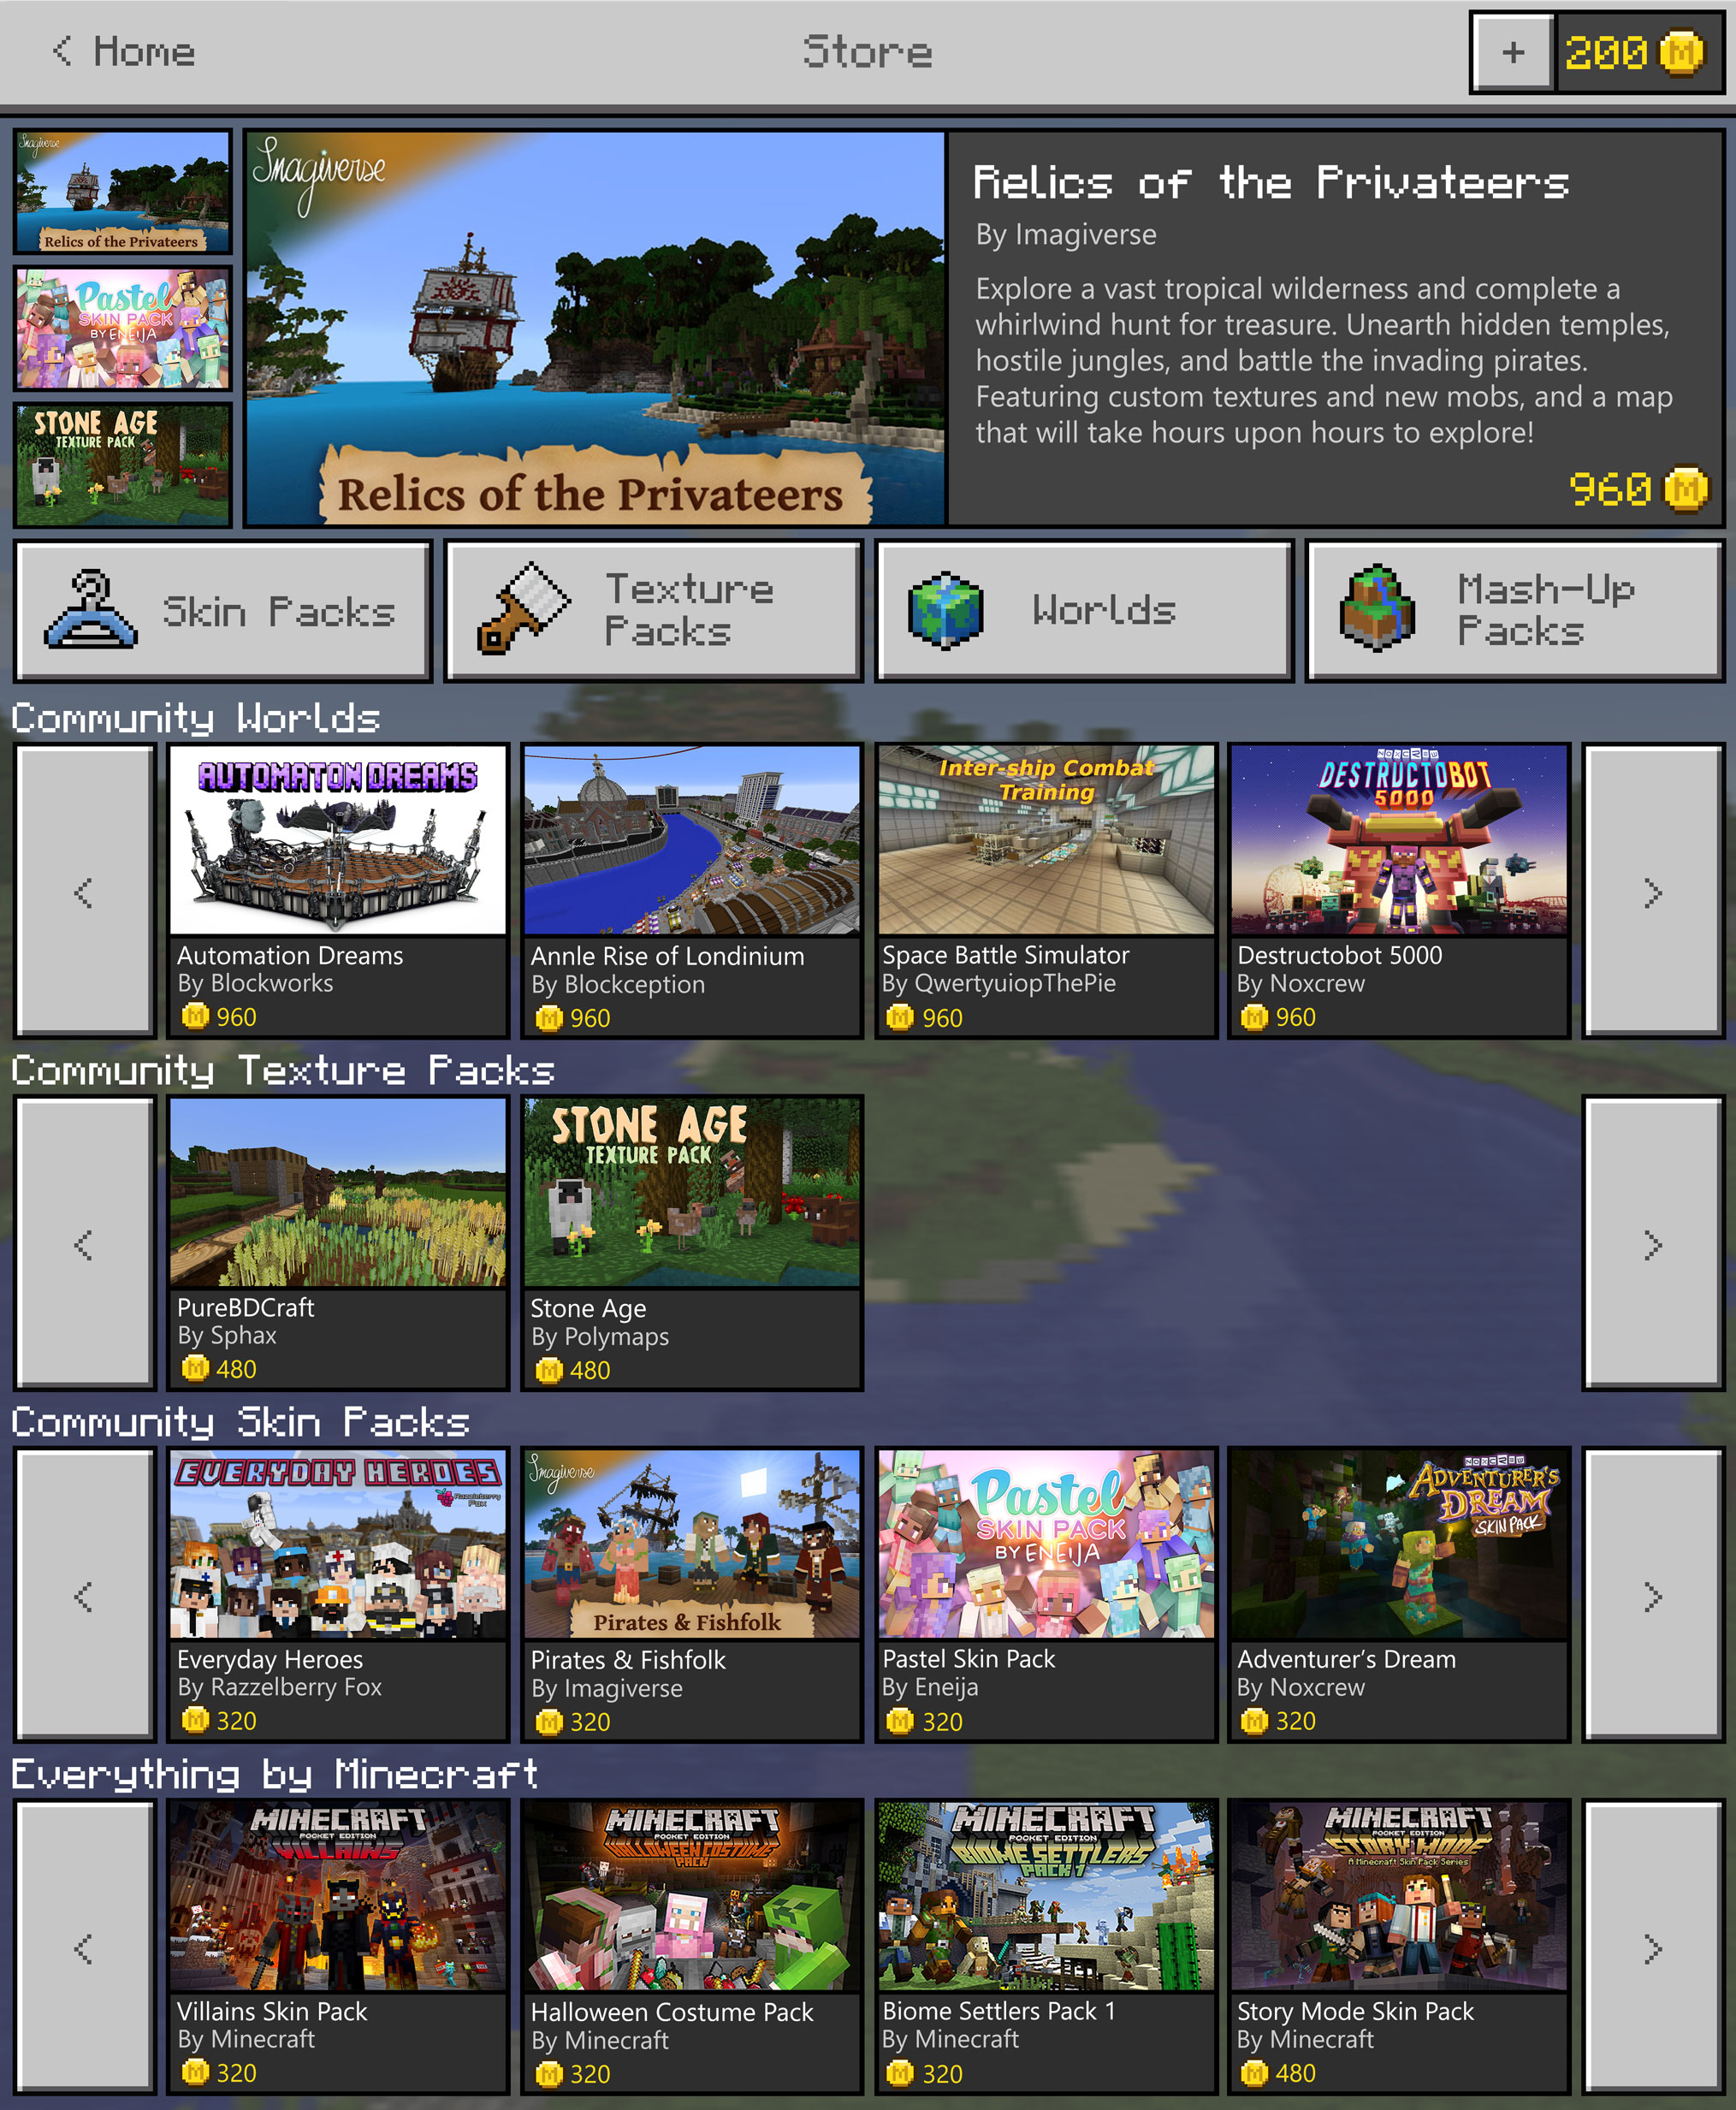 A preview of Minecraft Marketplace shows skins, texture packs and worlds that can be purchased with Microsoft Coins.